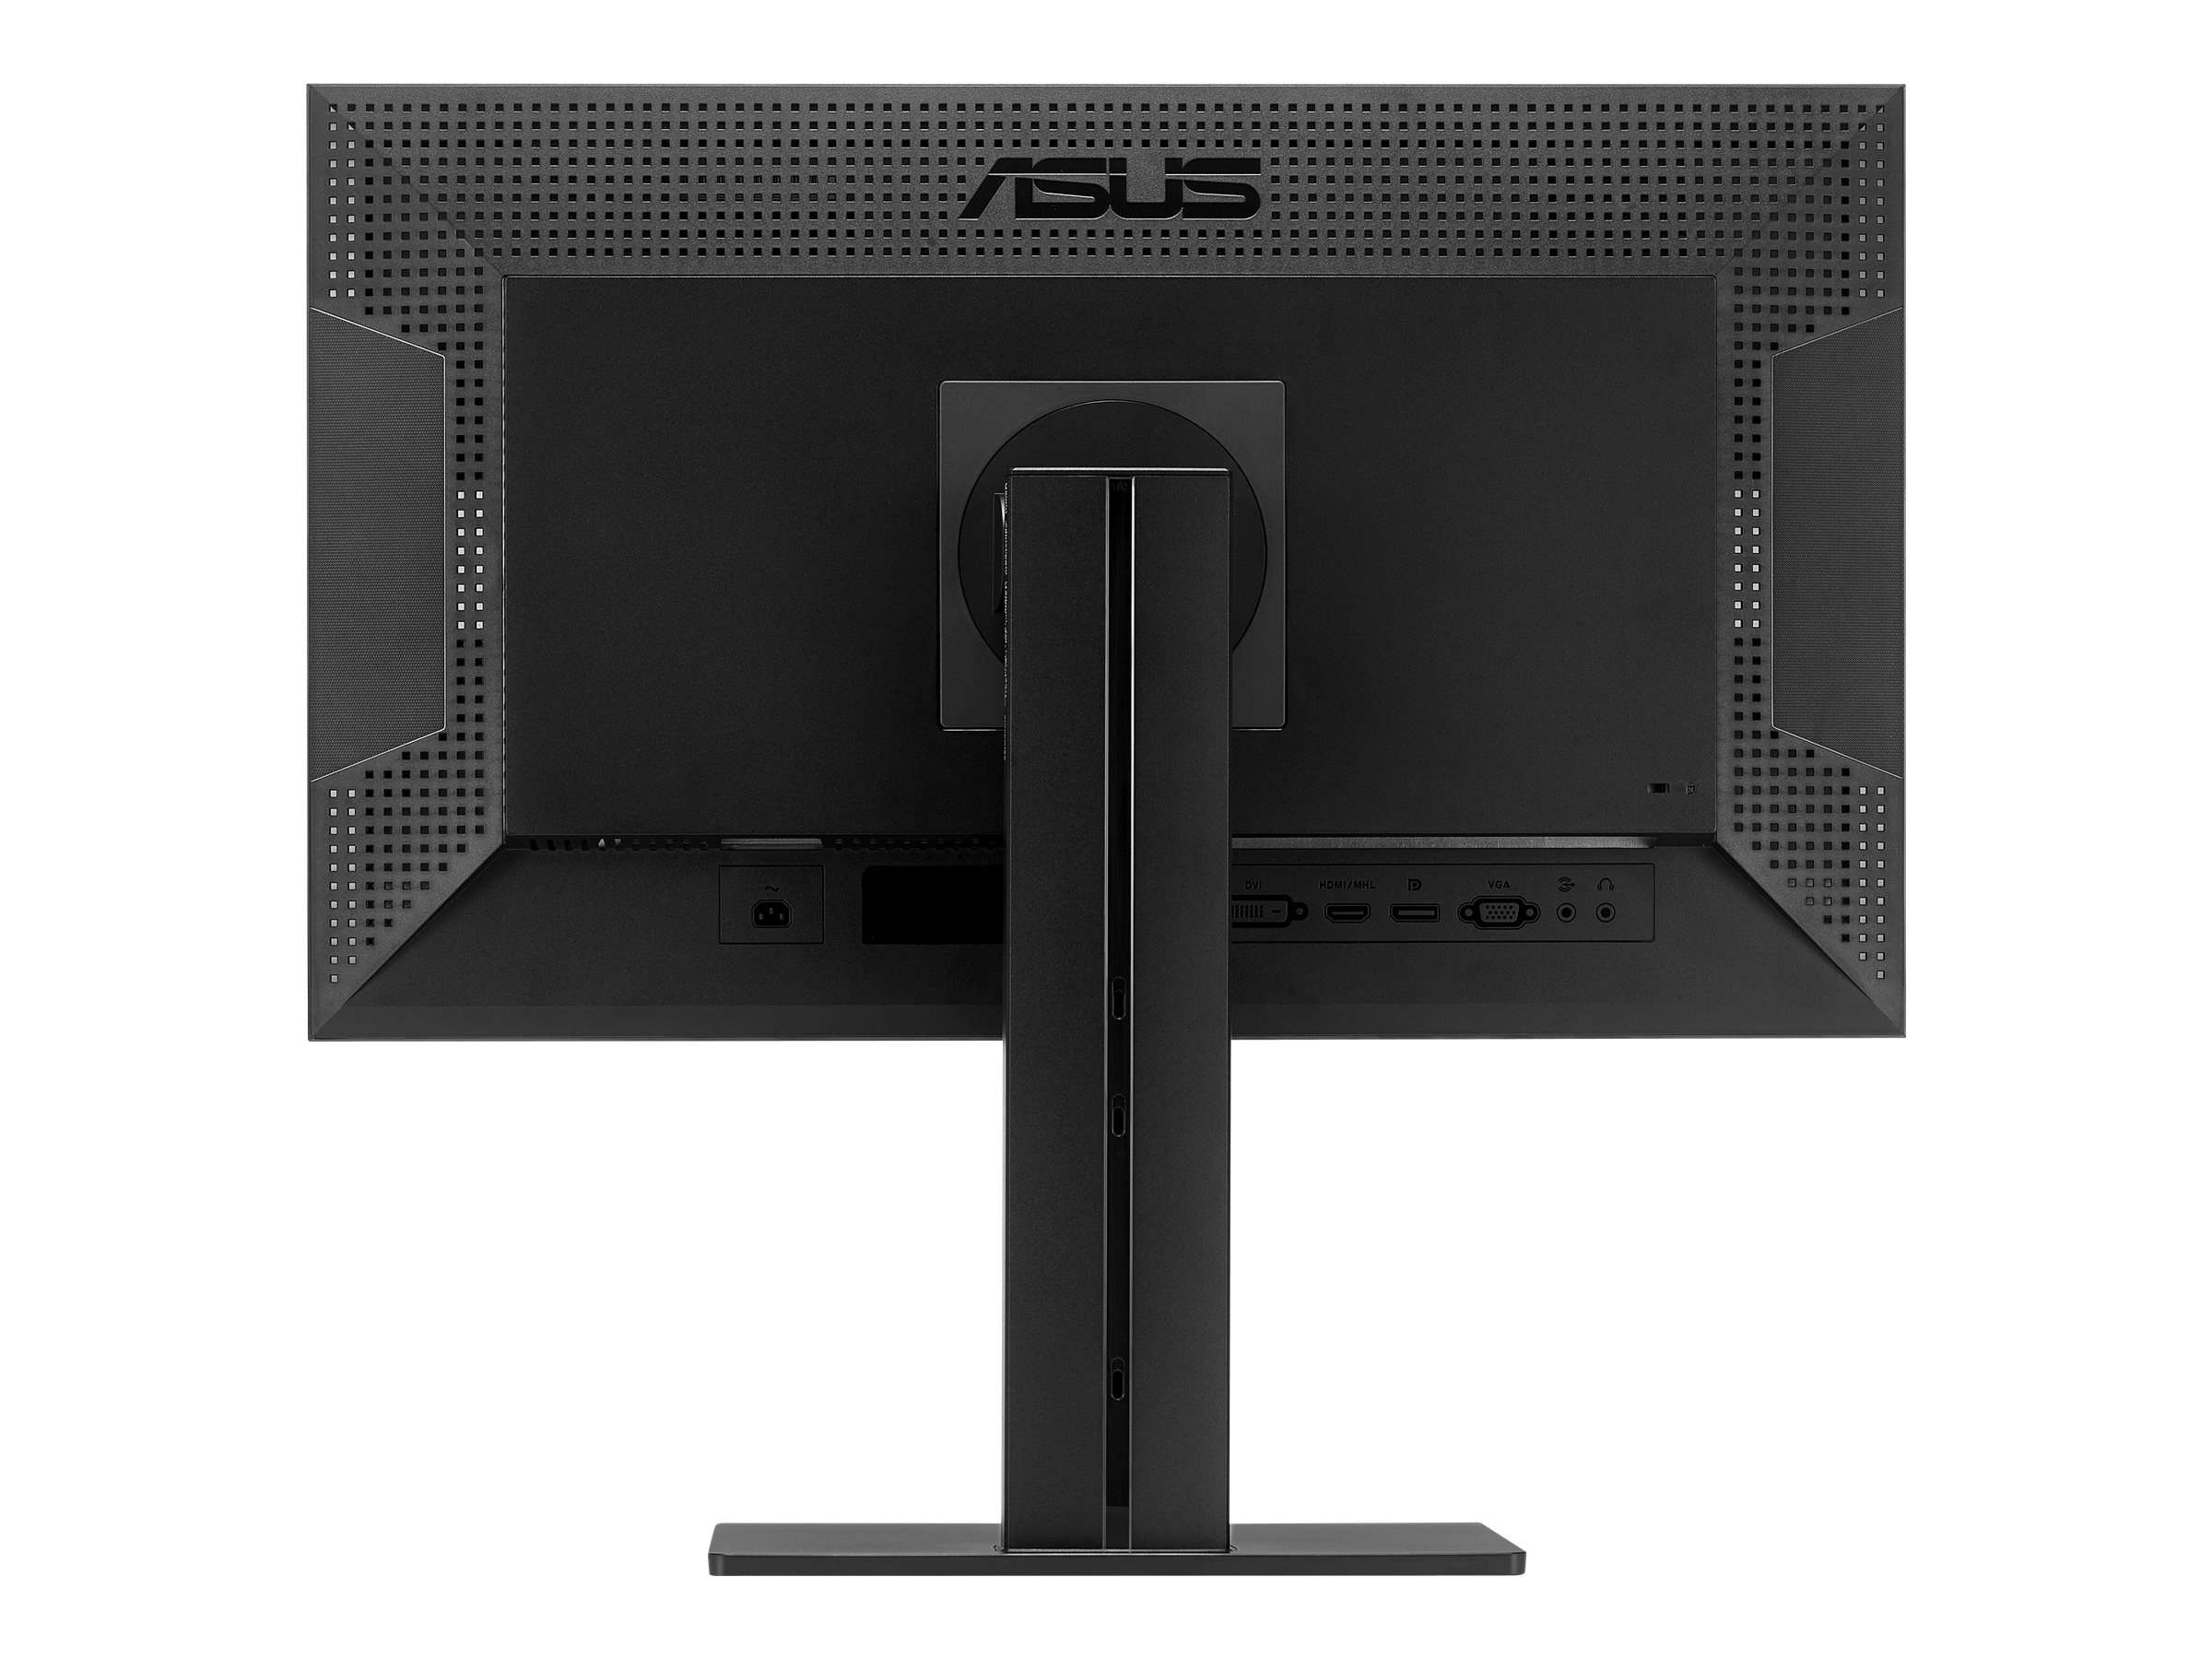 Asus 25 PB258Q WQHD LED-LCD Frameless Monitor, Black, PB258Q